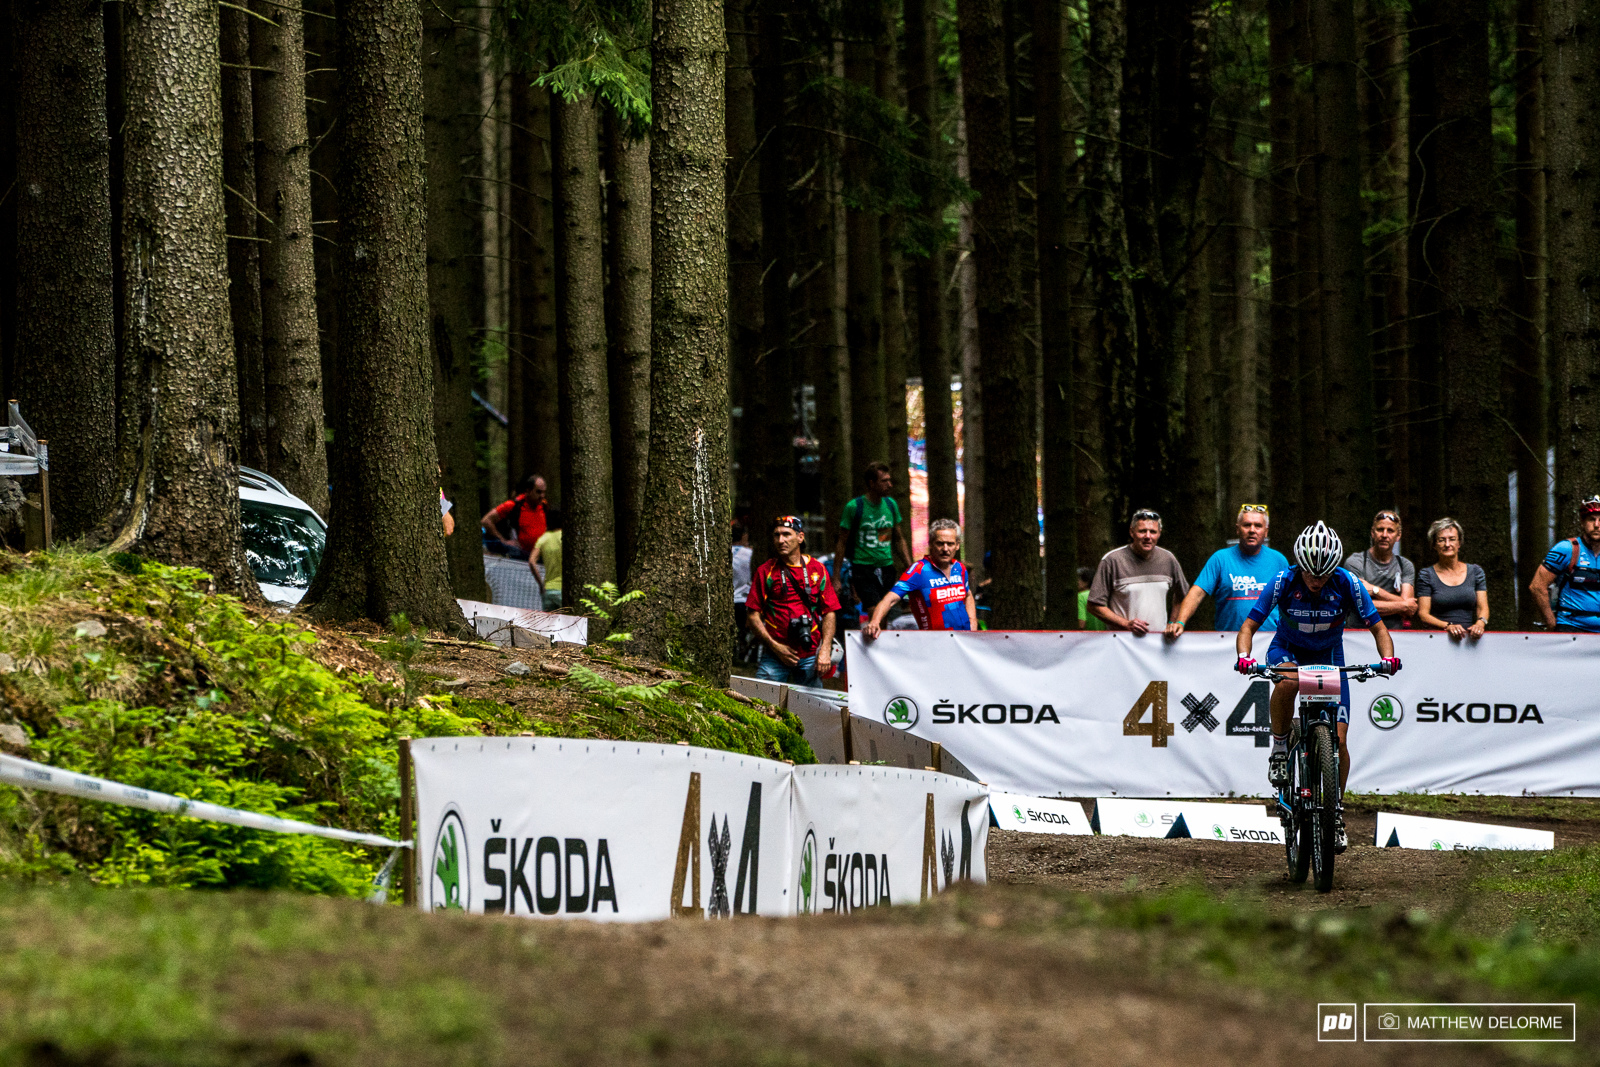 Martina Berta mashing up one of the climbs to second place.